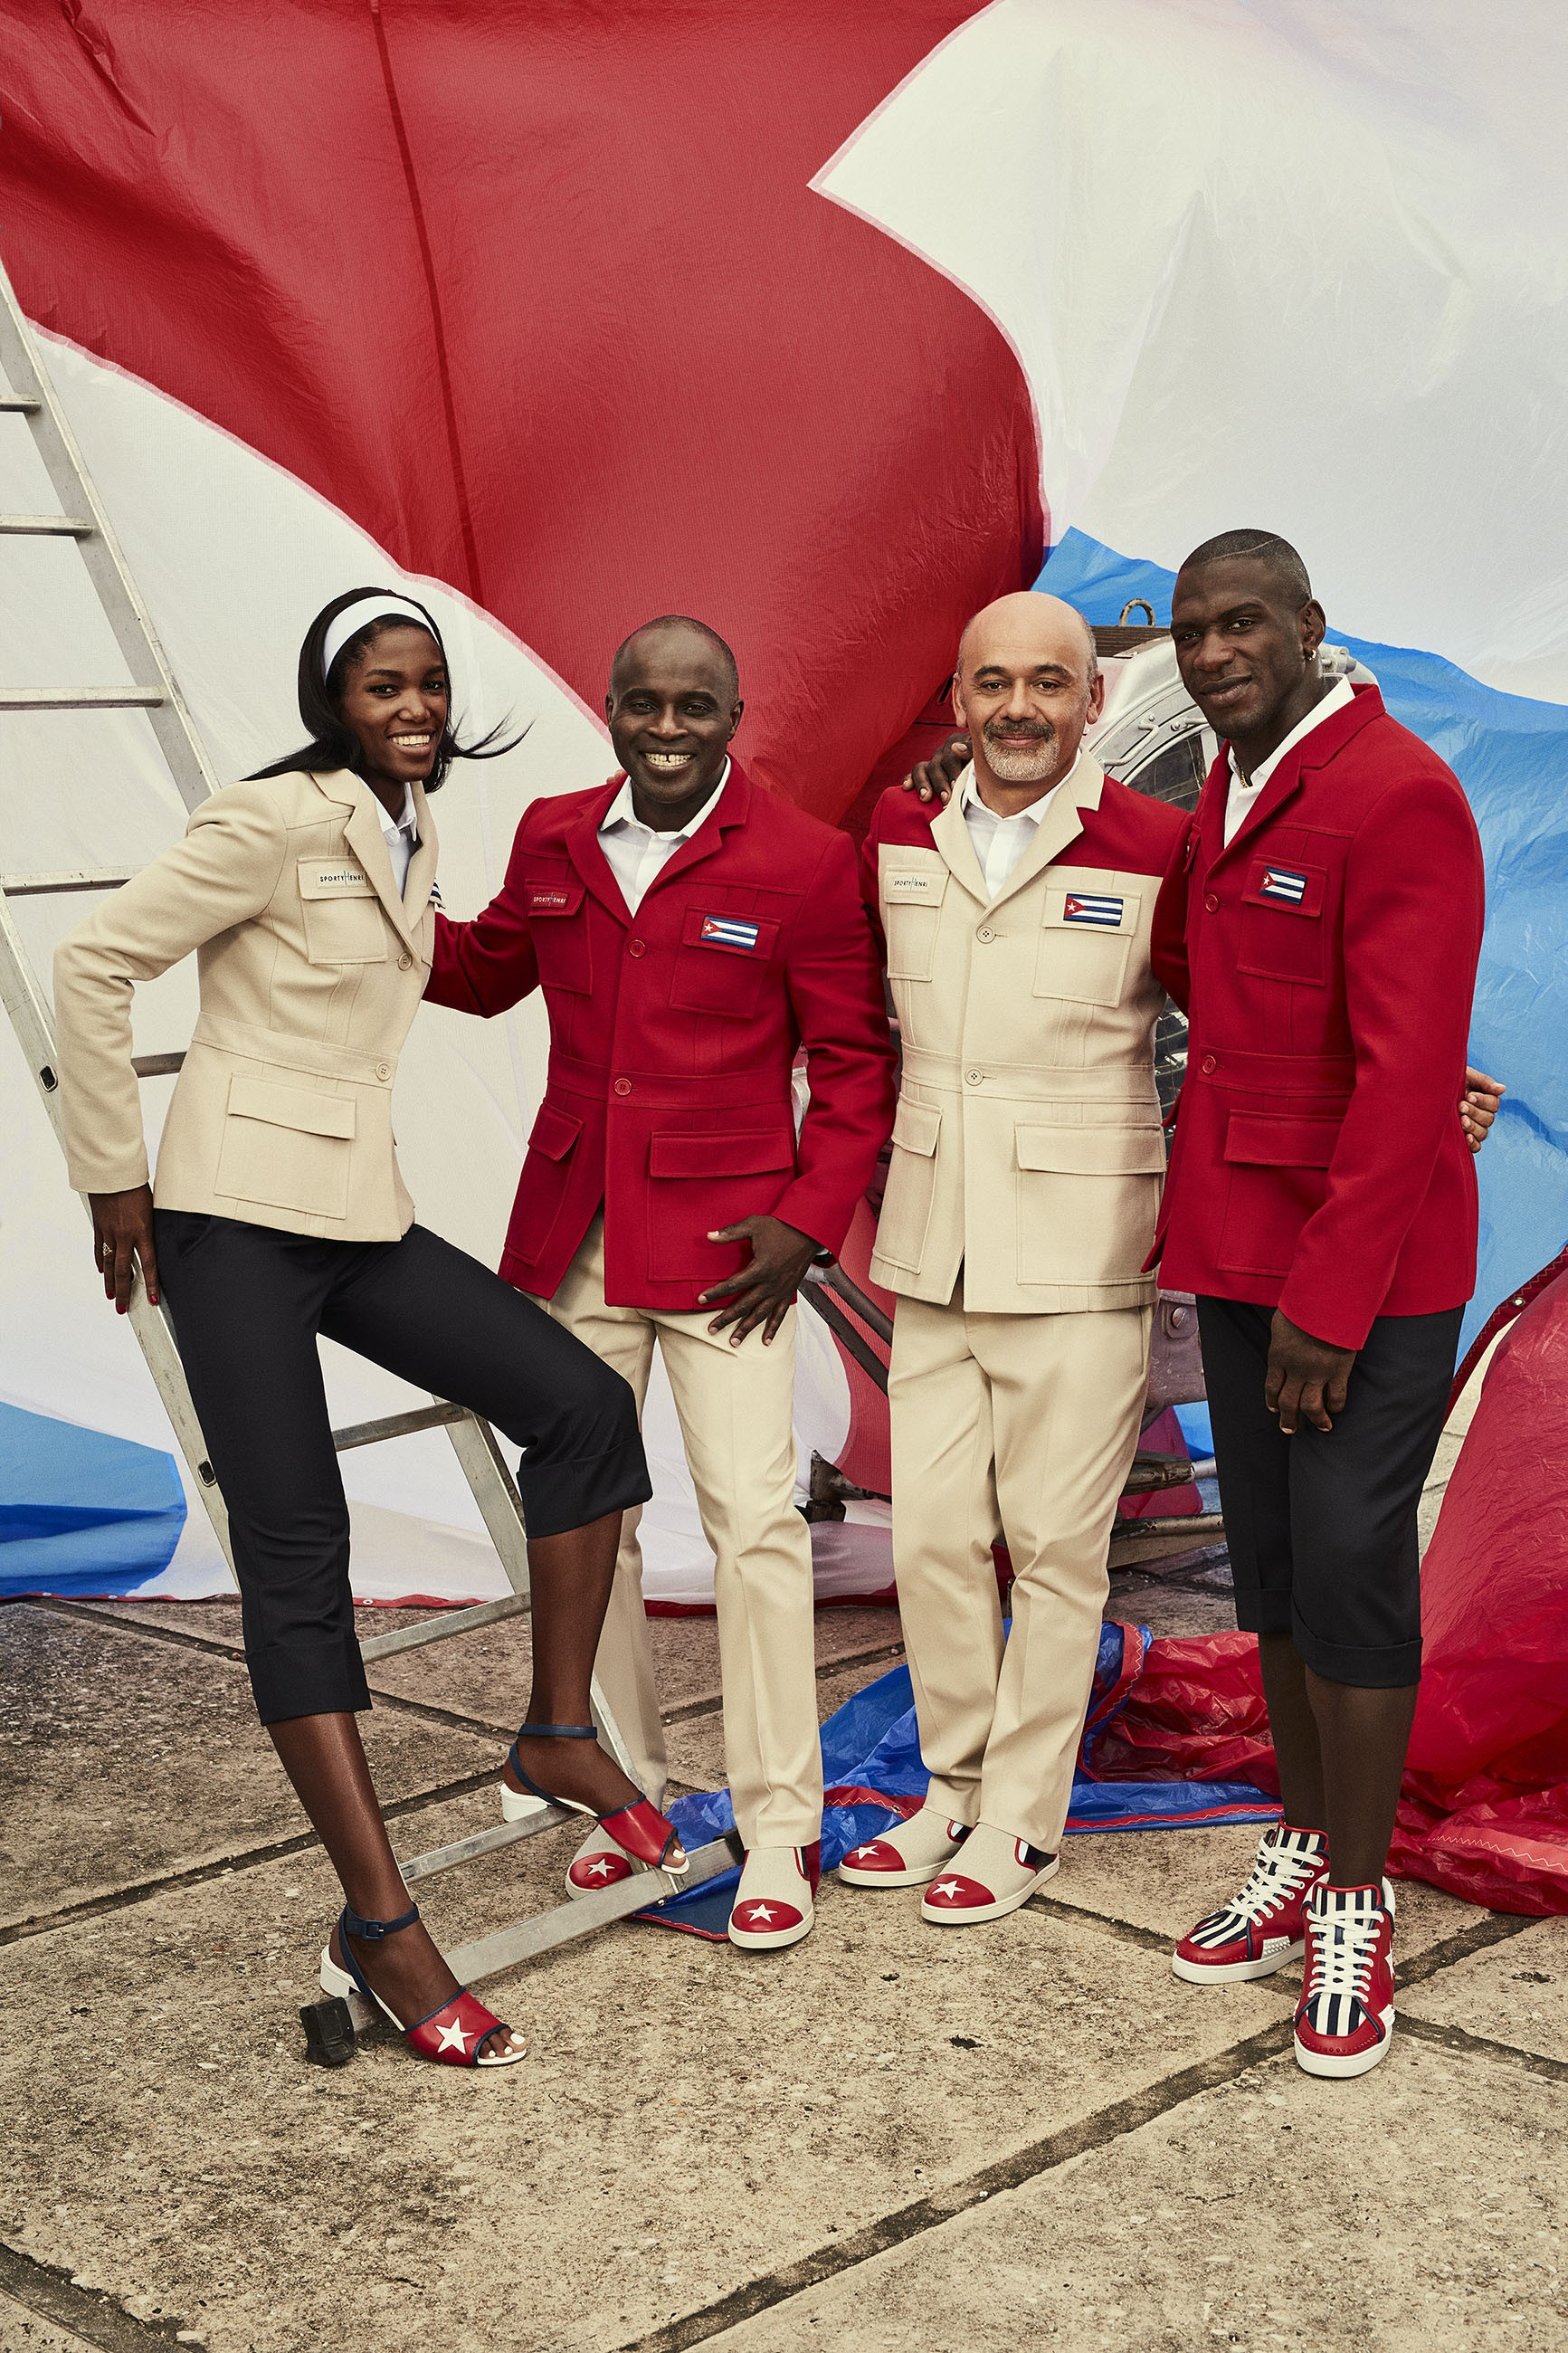 Christian Louboutin X SportyHenri.com Official Supplier of Cuban National delegation celebratory outfit with flags for Rio Olympic Games